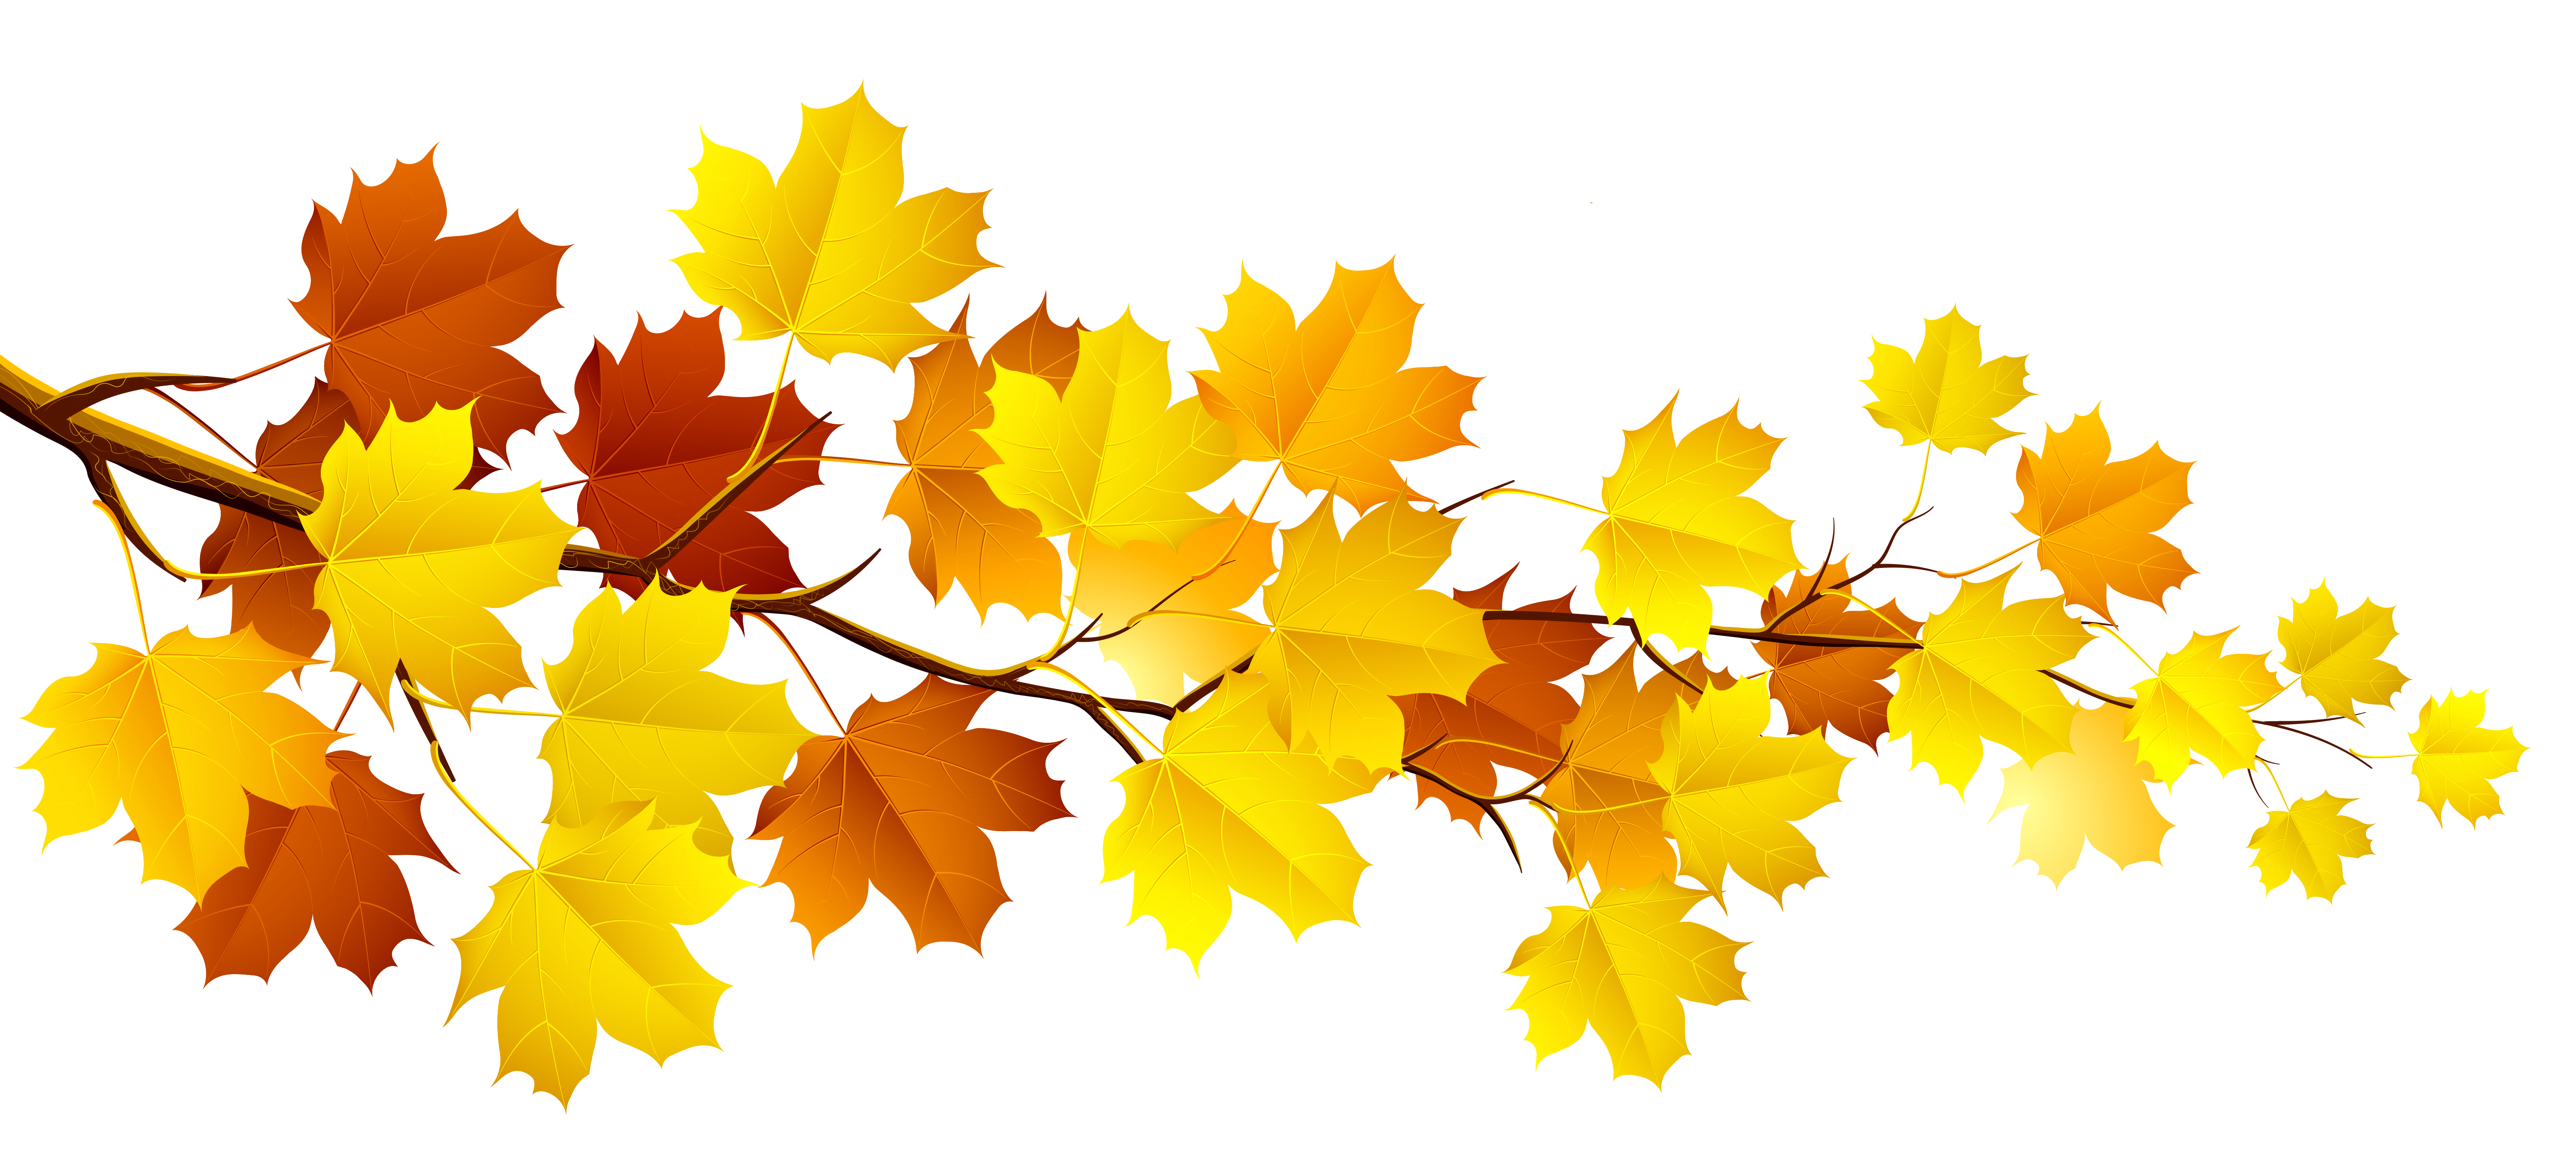 vector black and white stock With autumn png gallery. Leaves clipart branch